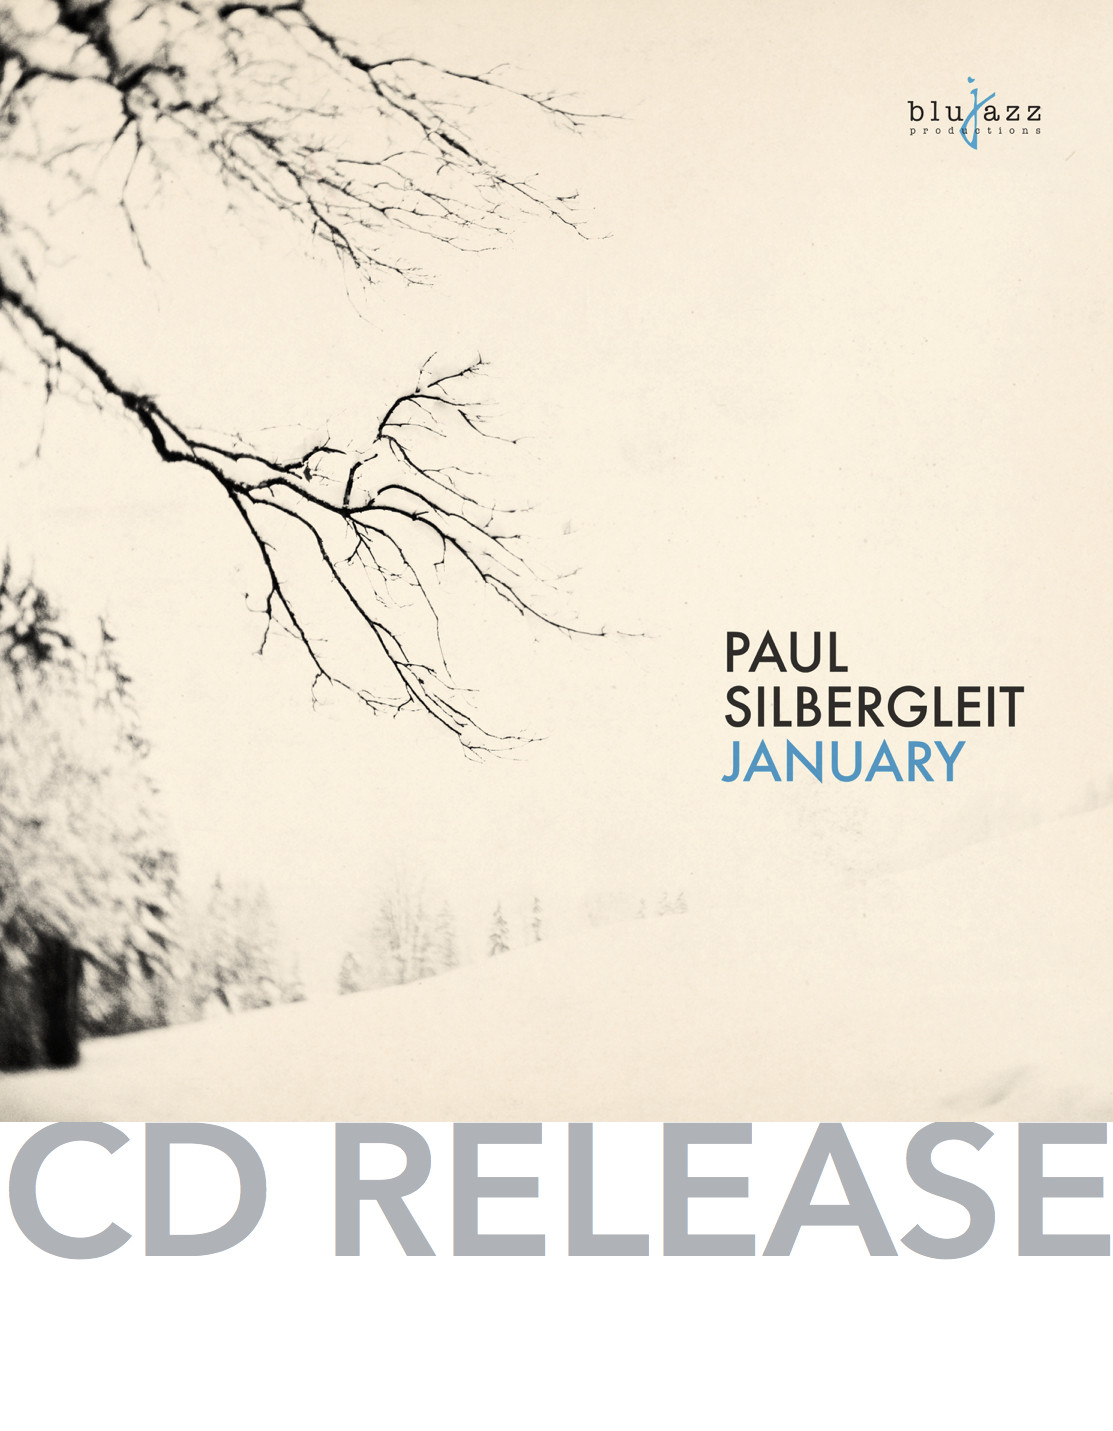 january cd release